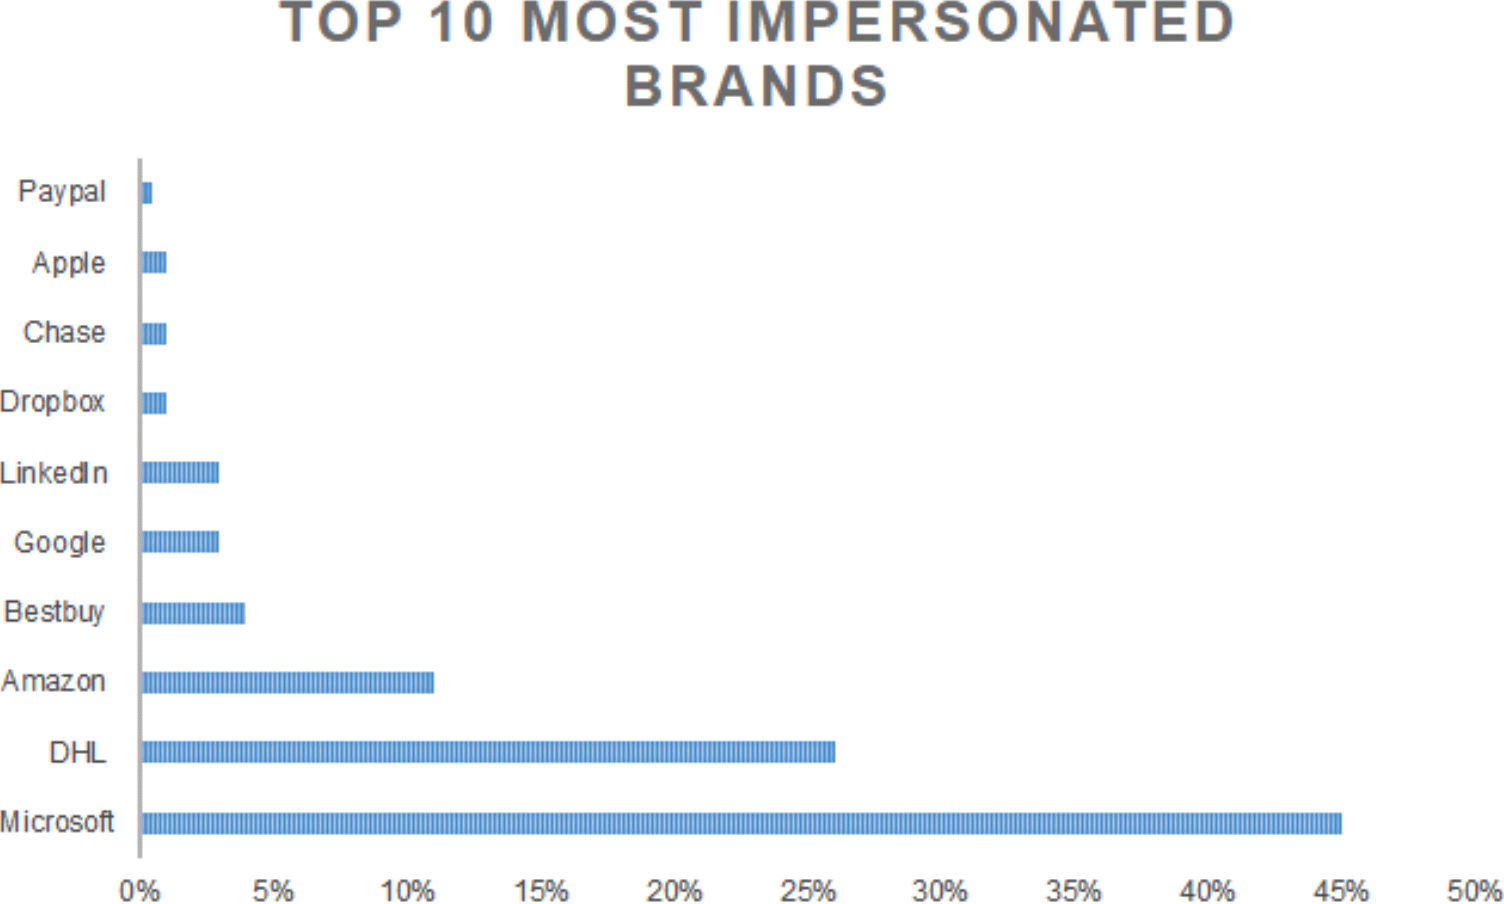 Q2 2021 Top 10 Most Impersonated Brands in Domains 6